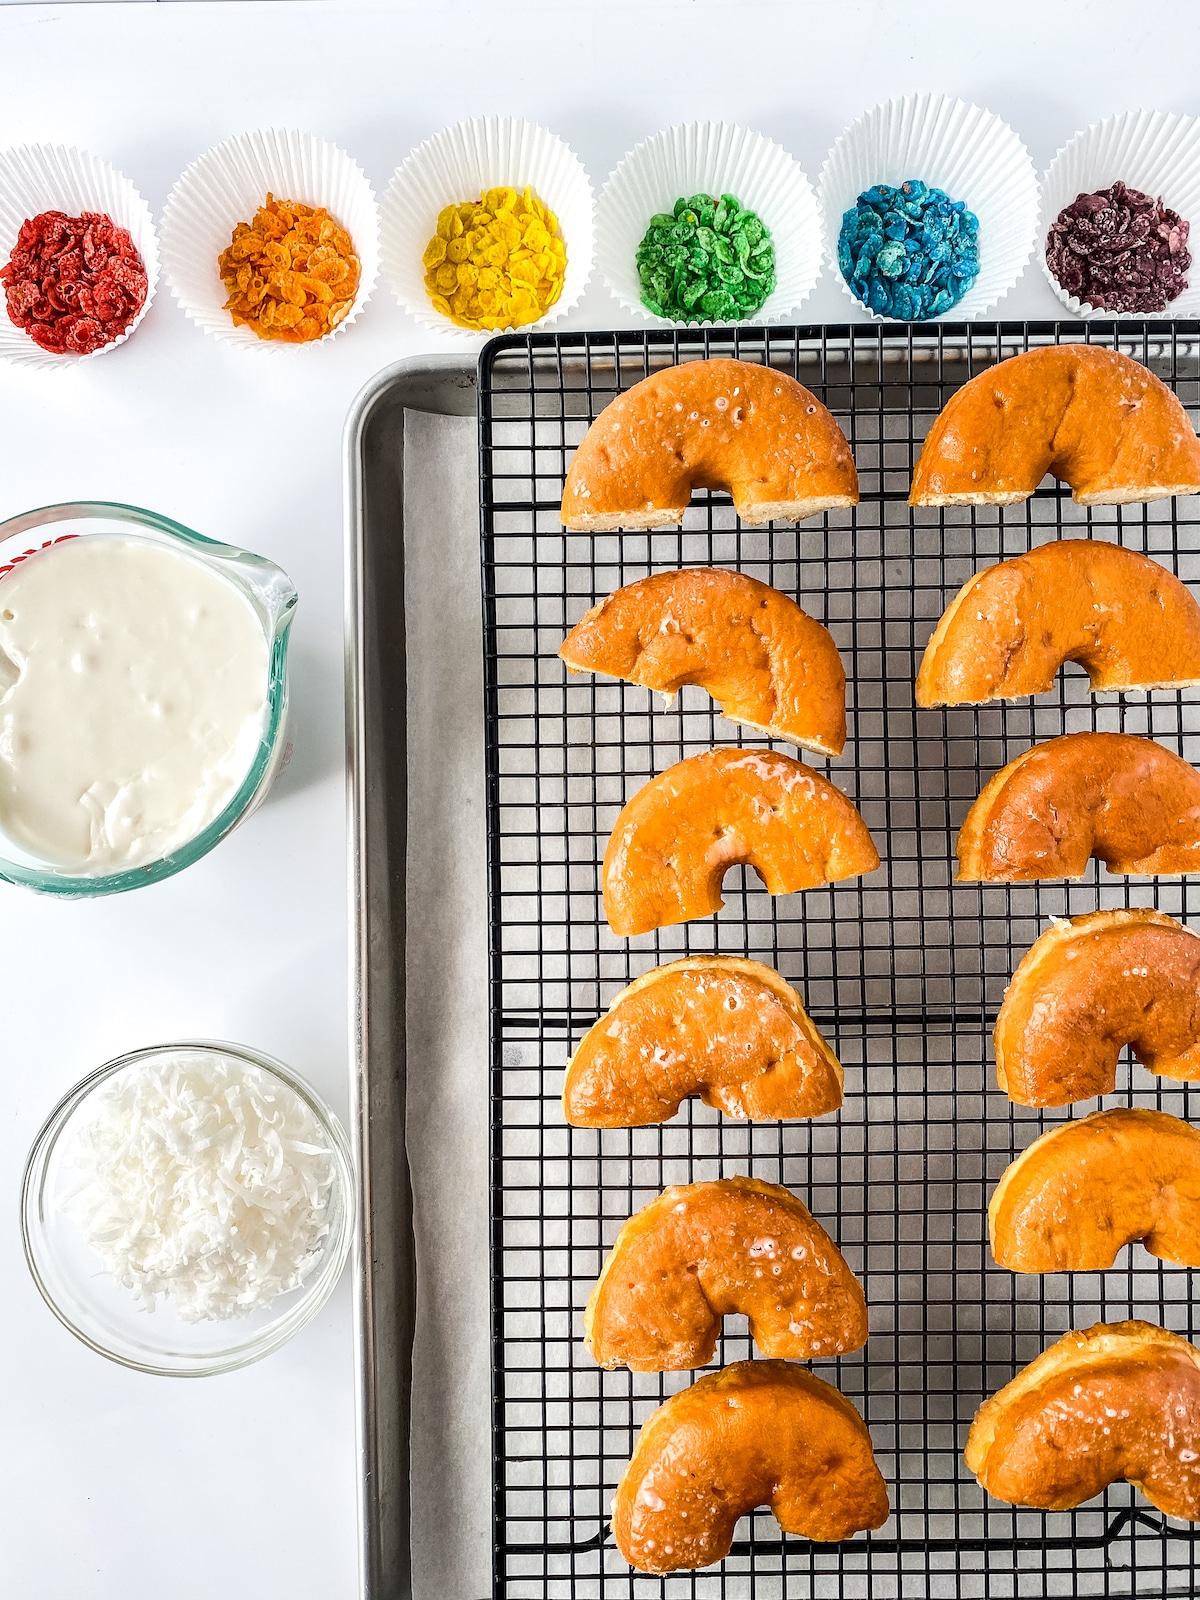 Ingredients for rainbow donuts